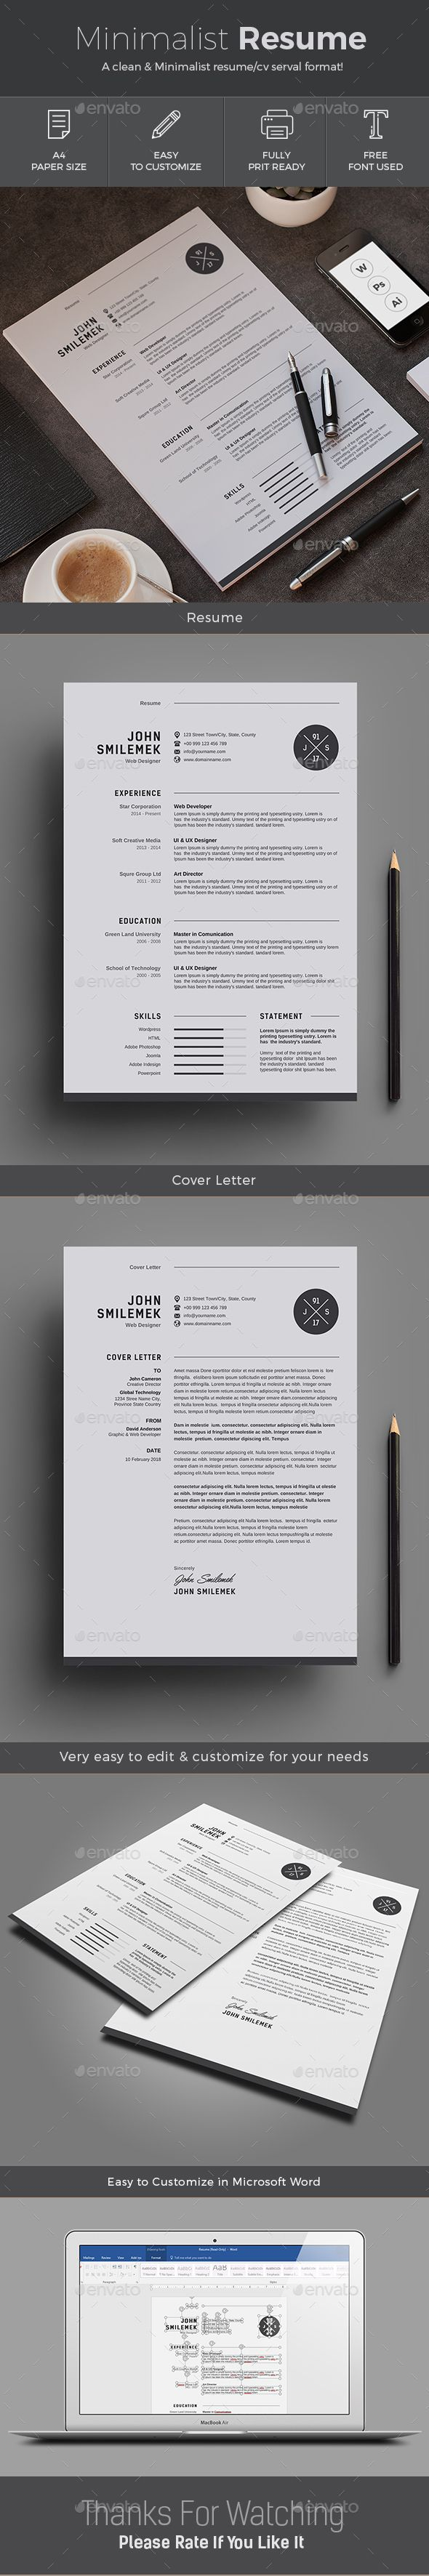 26 best Cv images on Pinterest | Resume templates, Resume design and ...